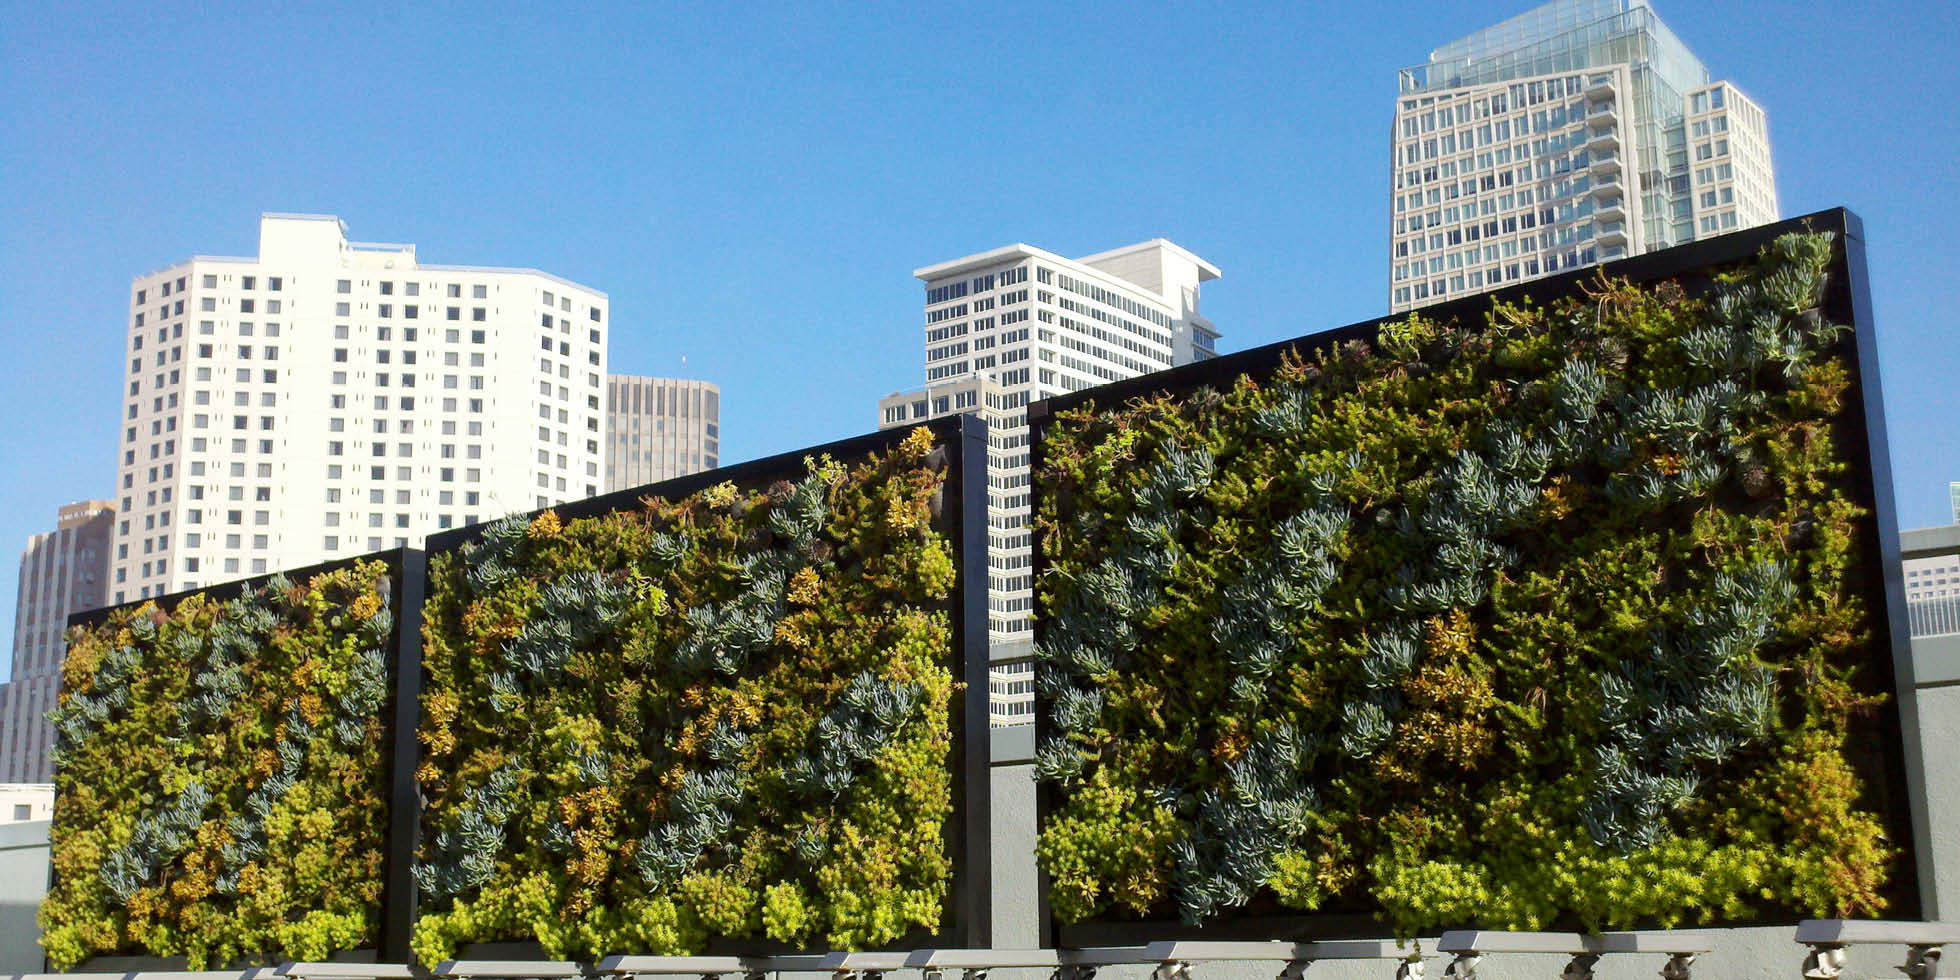 Metreon City View Living Wall by Habitat Horticulture - View 1